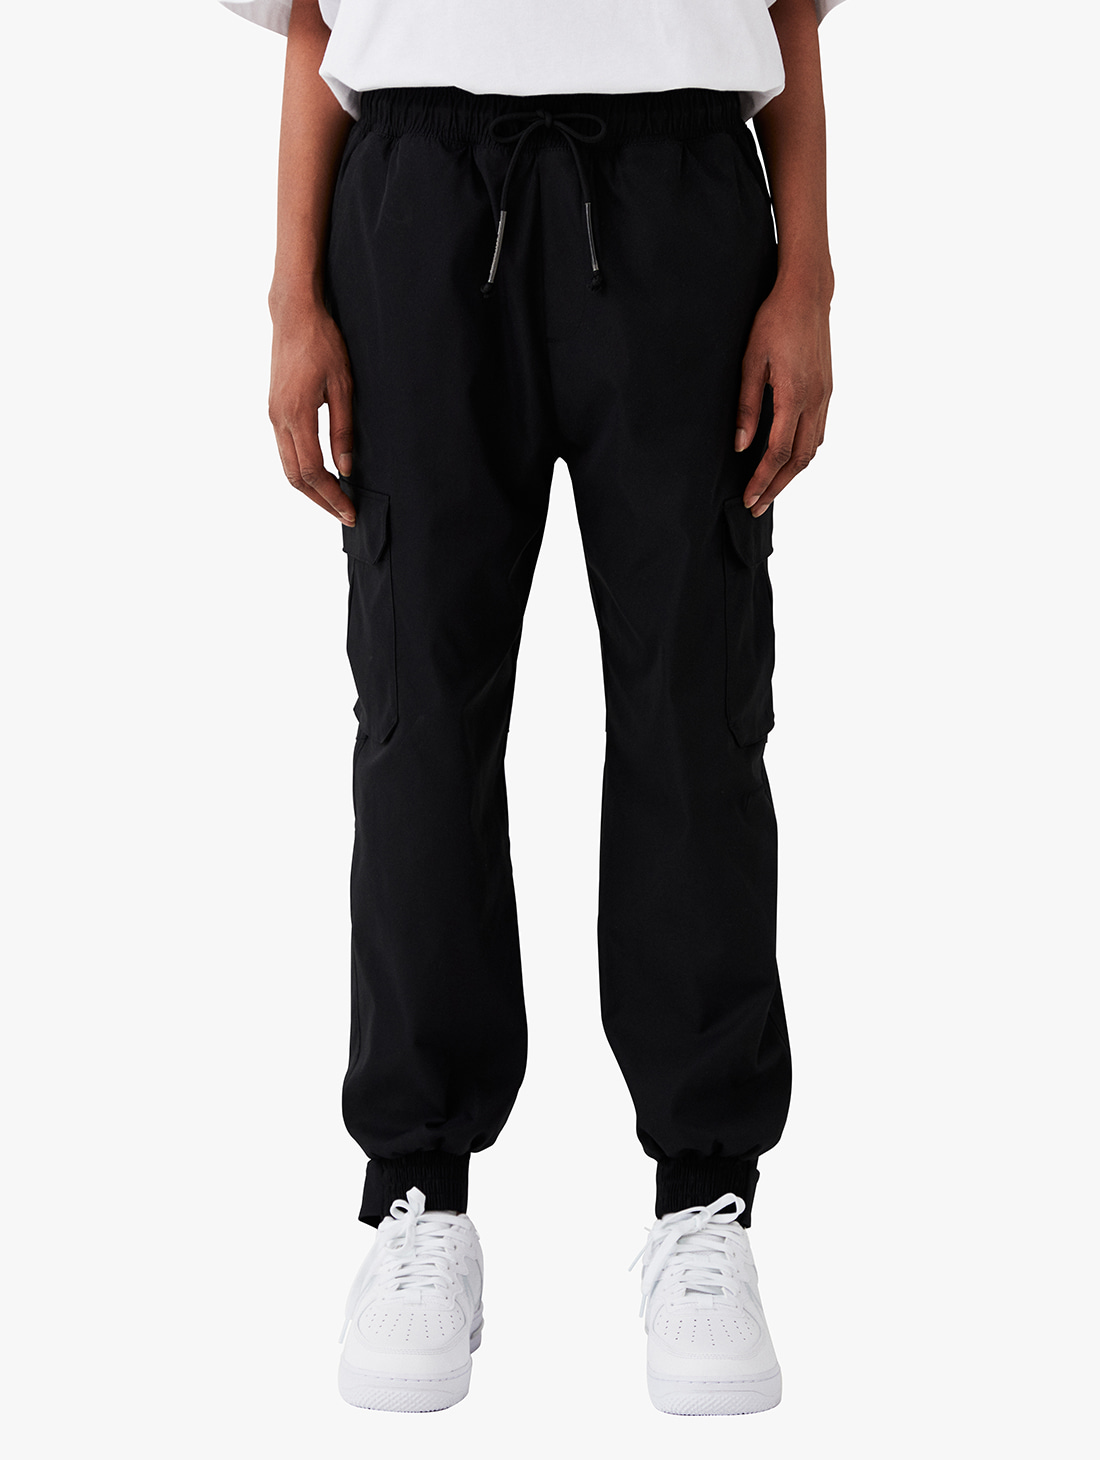 CARGO WOVEN PANTS (2 Colors)